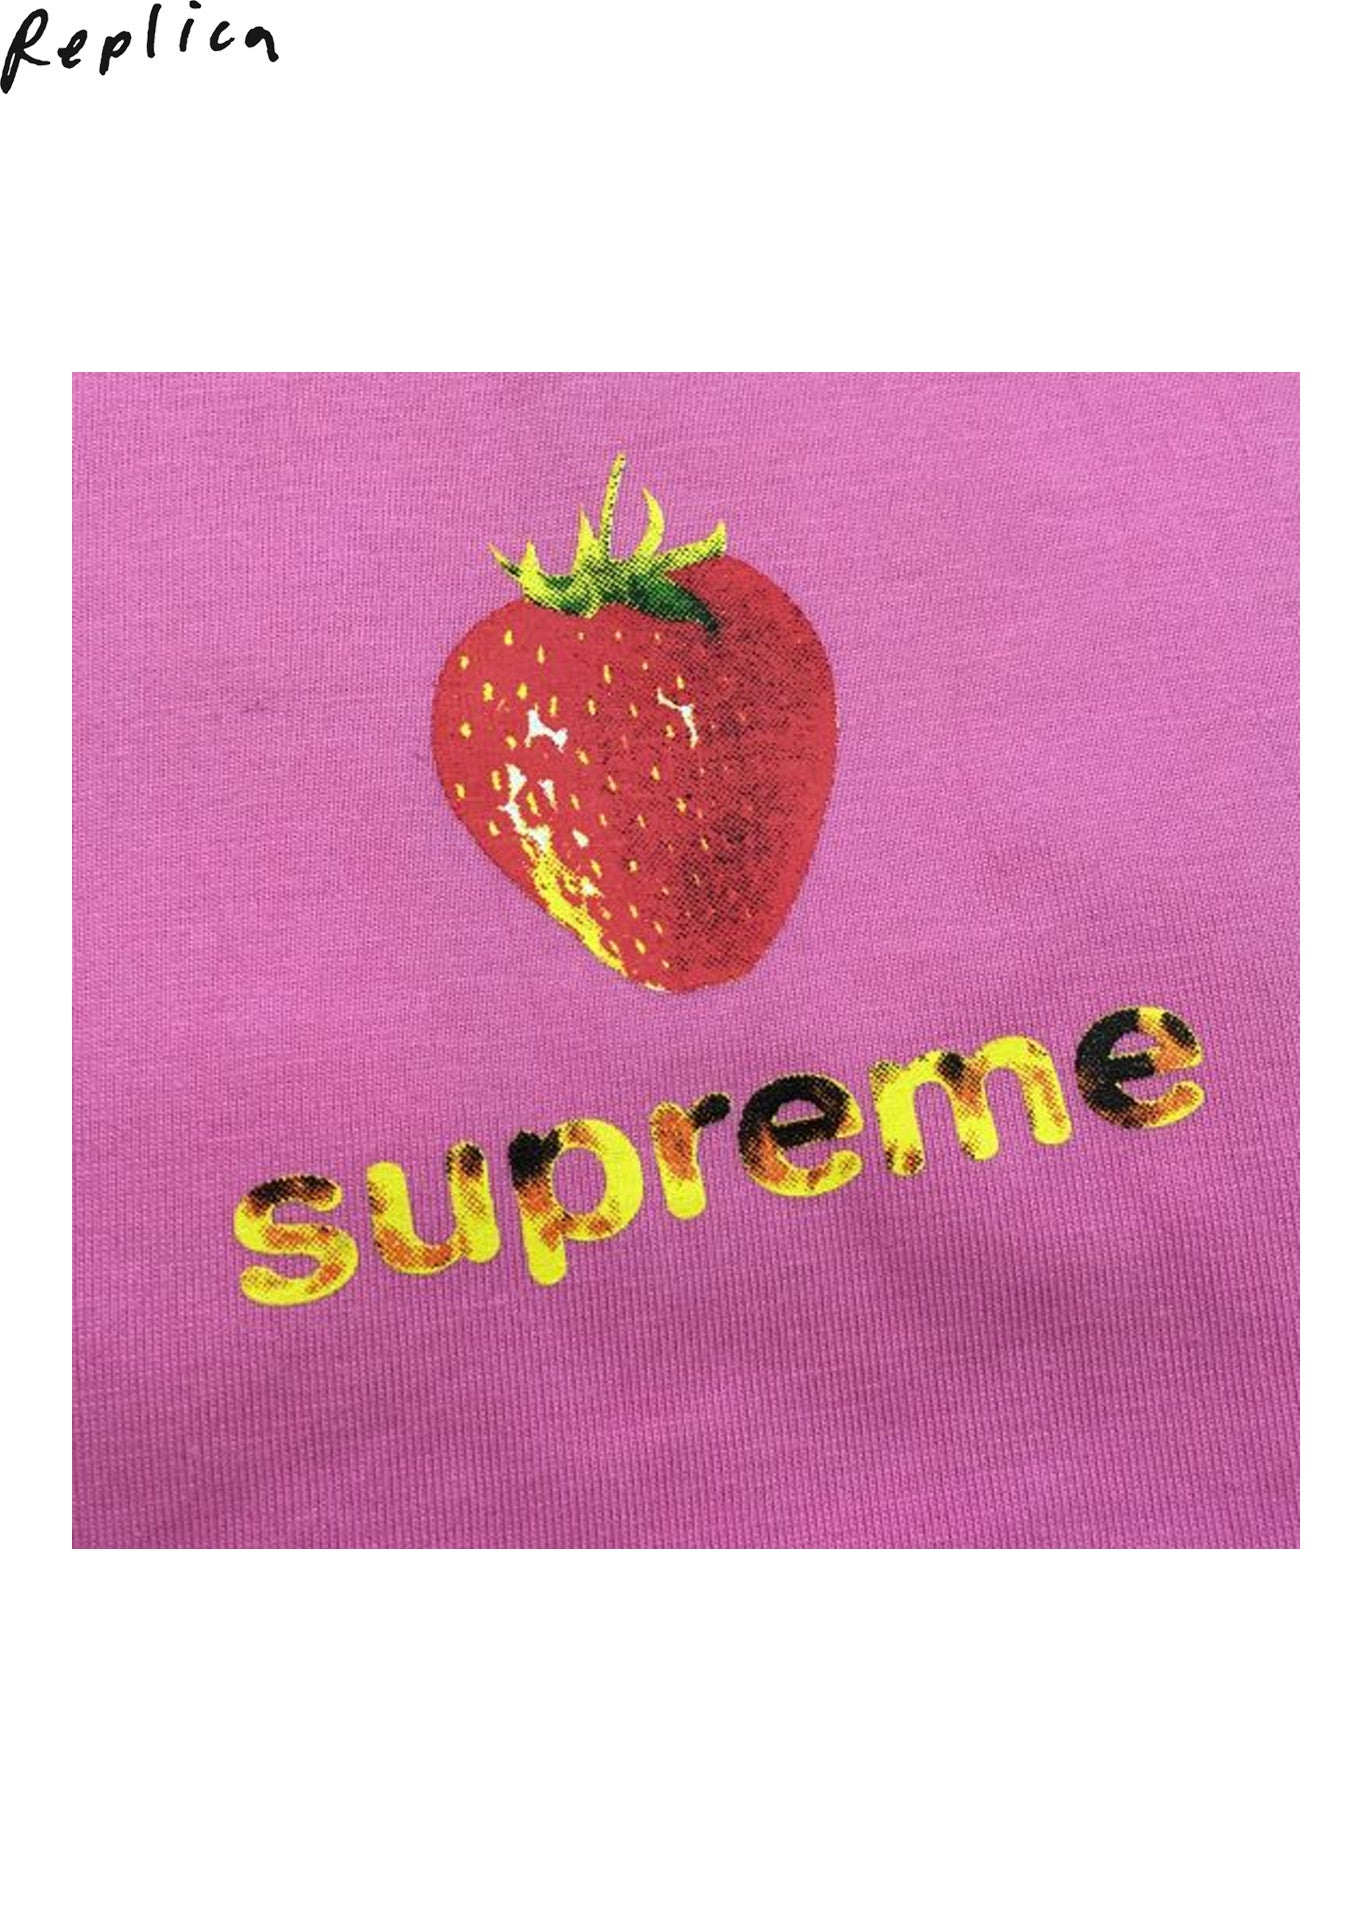 Supreme Berry Strawberry Tee (S/S 2016)